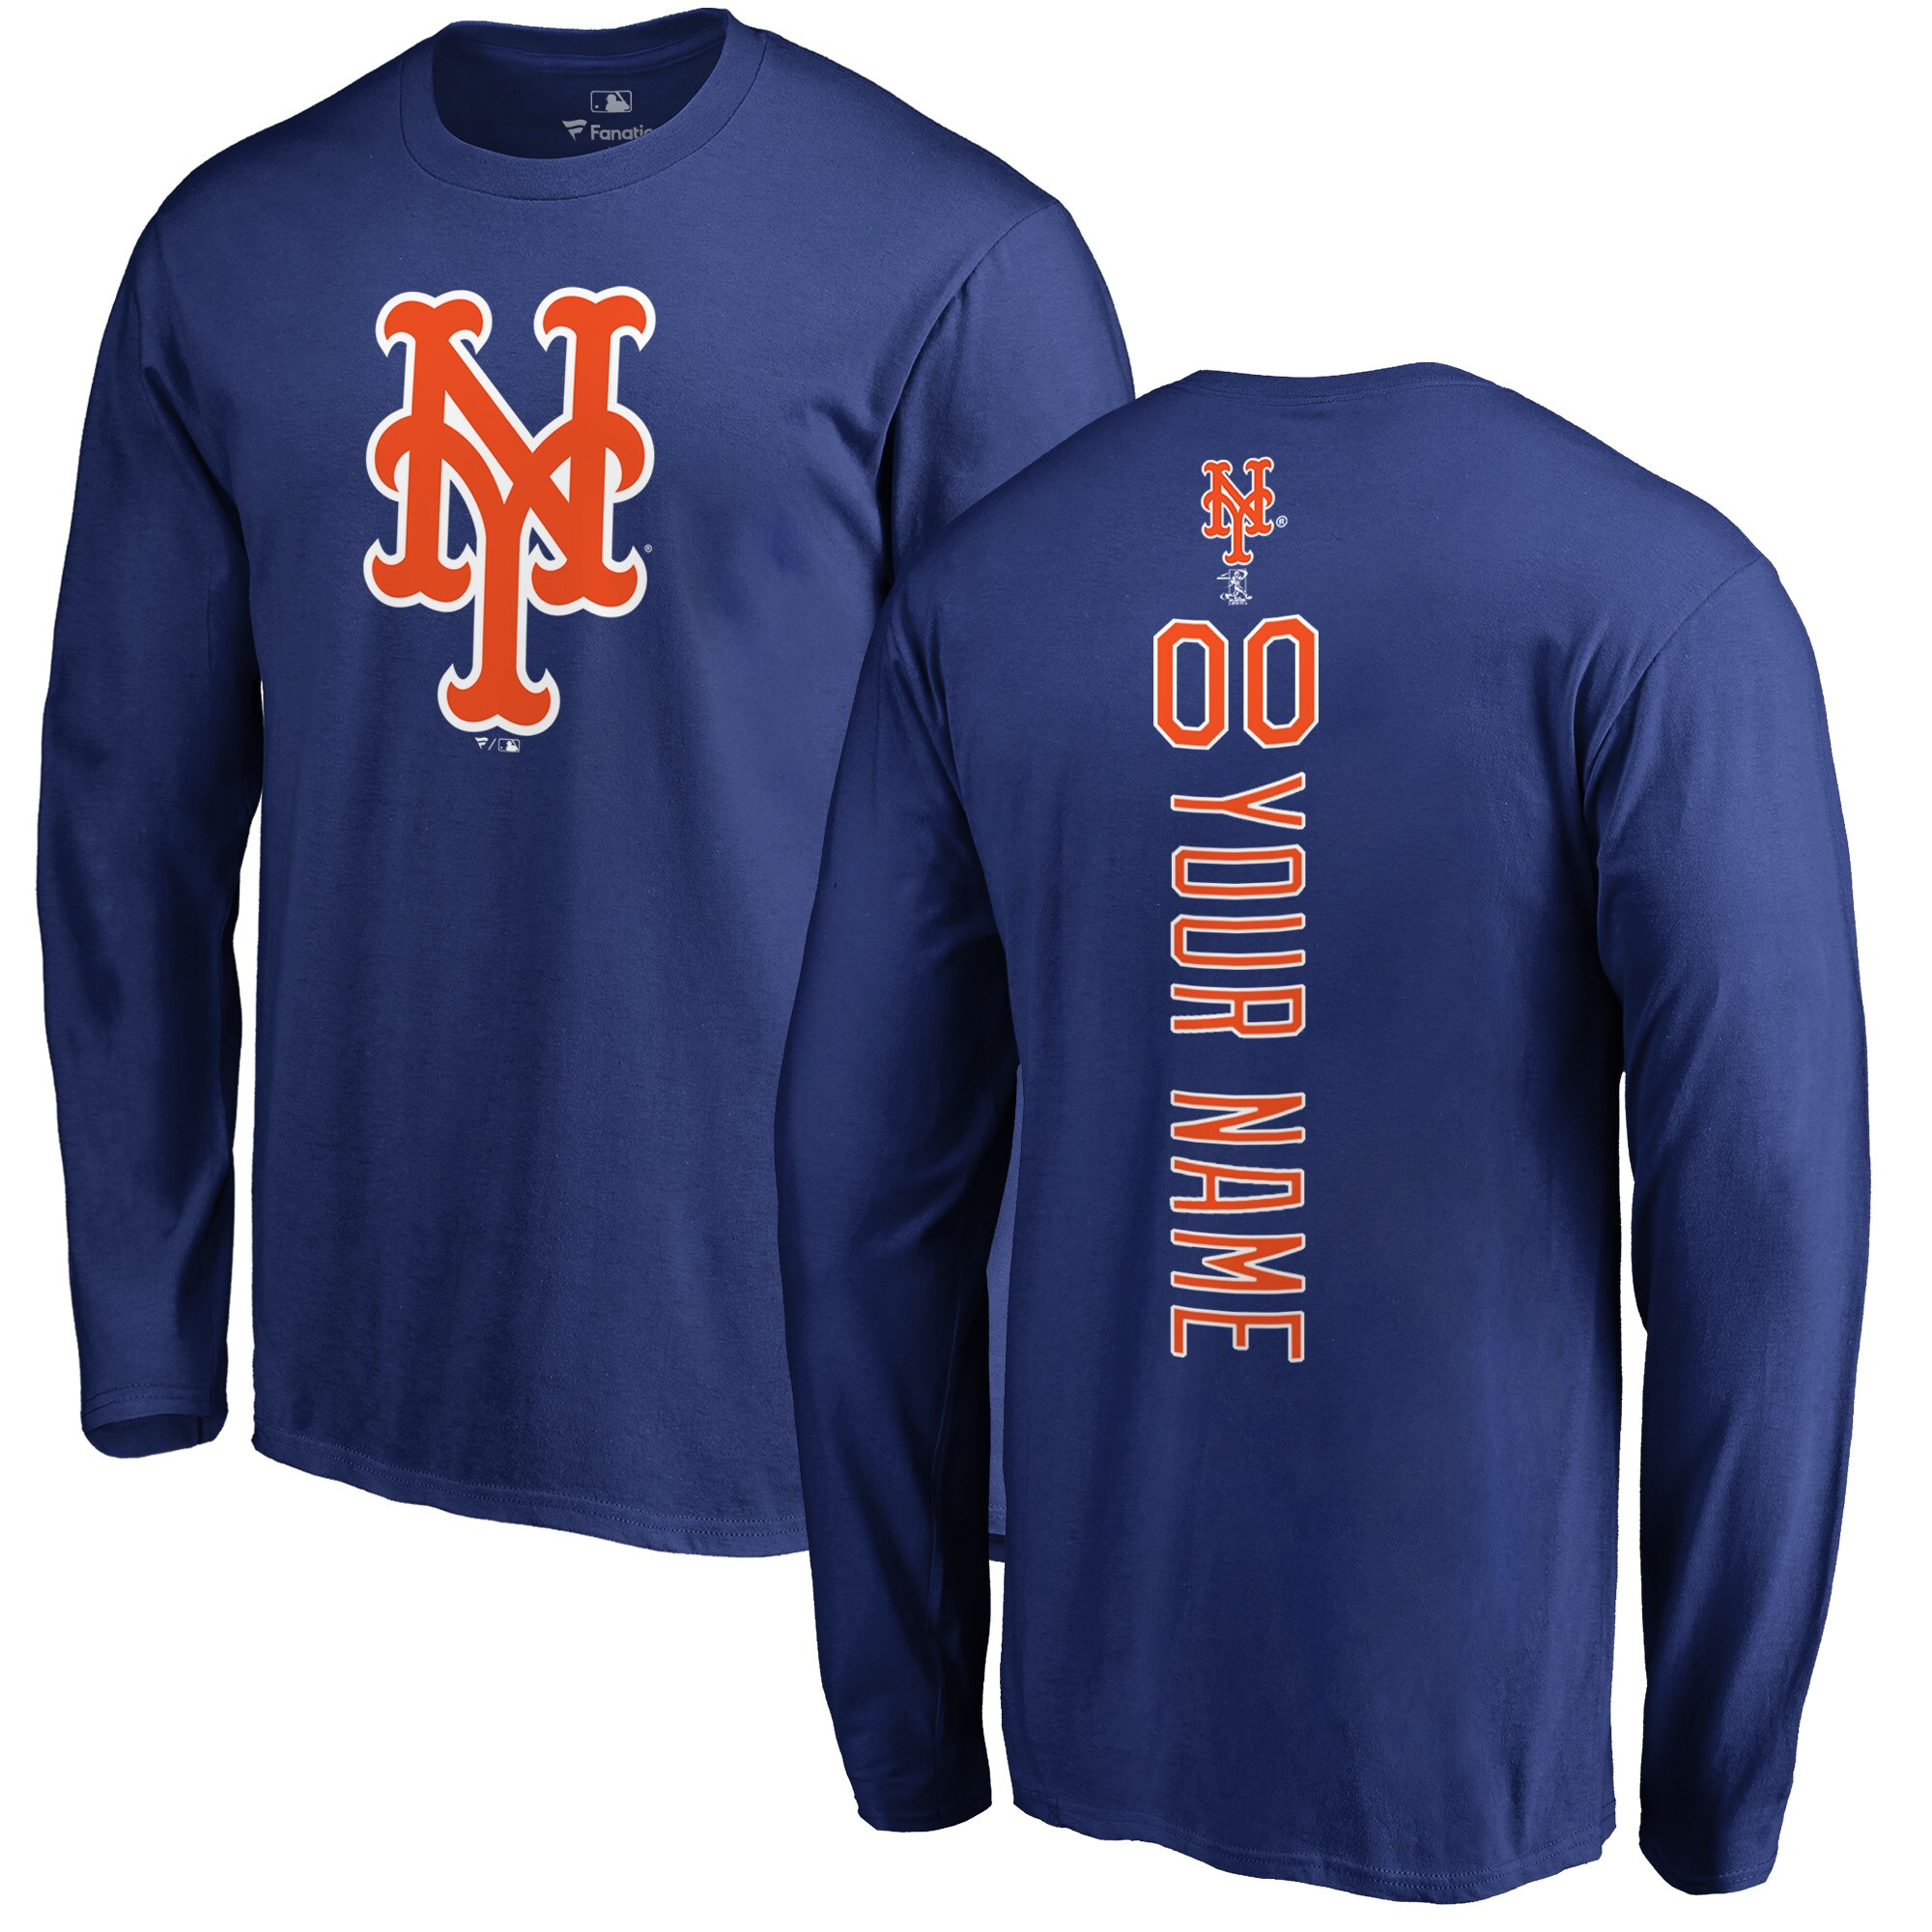 New York Mets Fanatics Branded Personalized Playmaker Long Sleeve T-Shirt - Royal